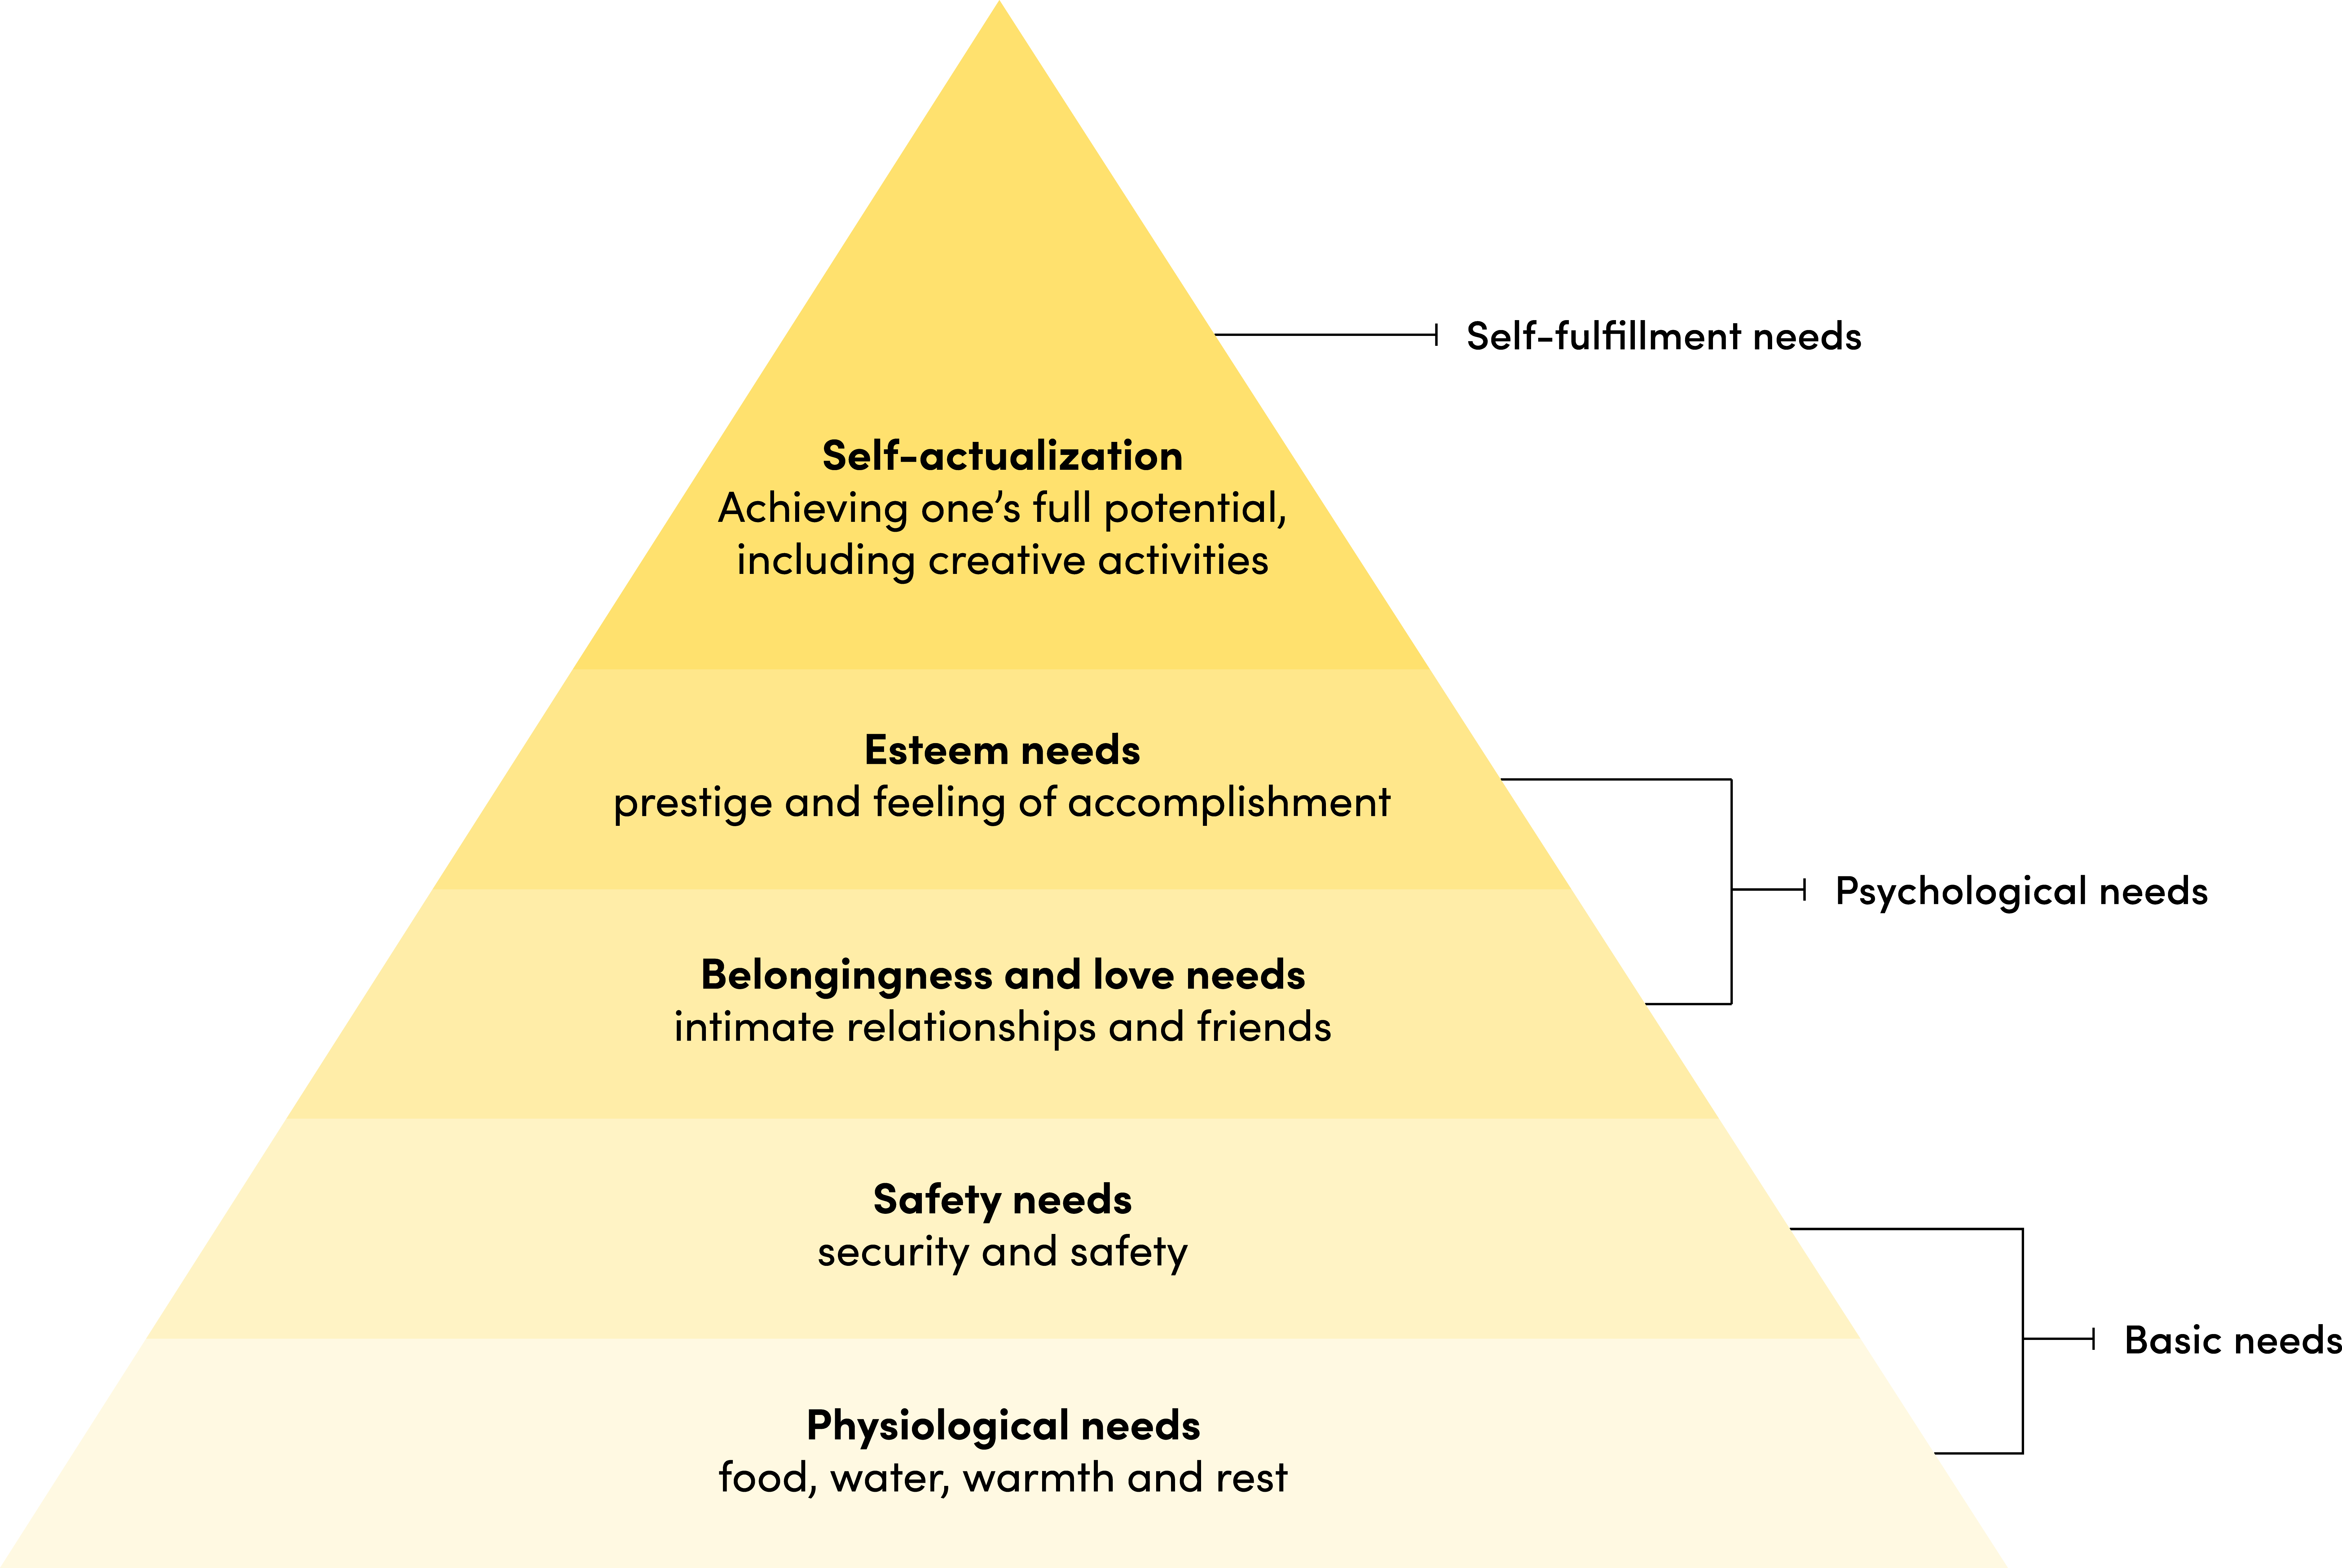 Maslow's hierarchy of needs graph